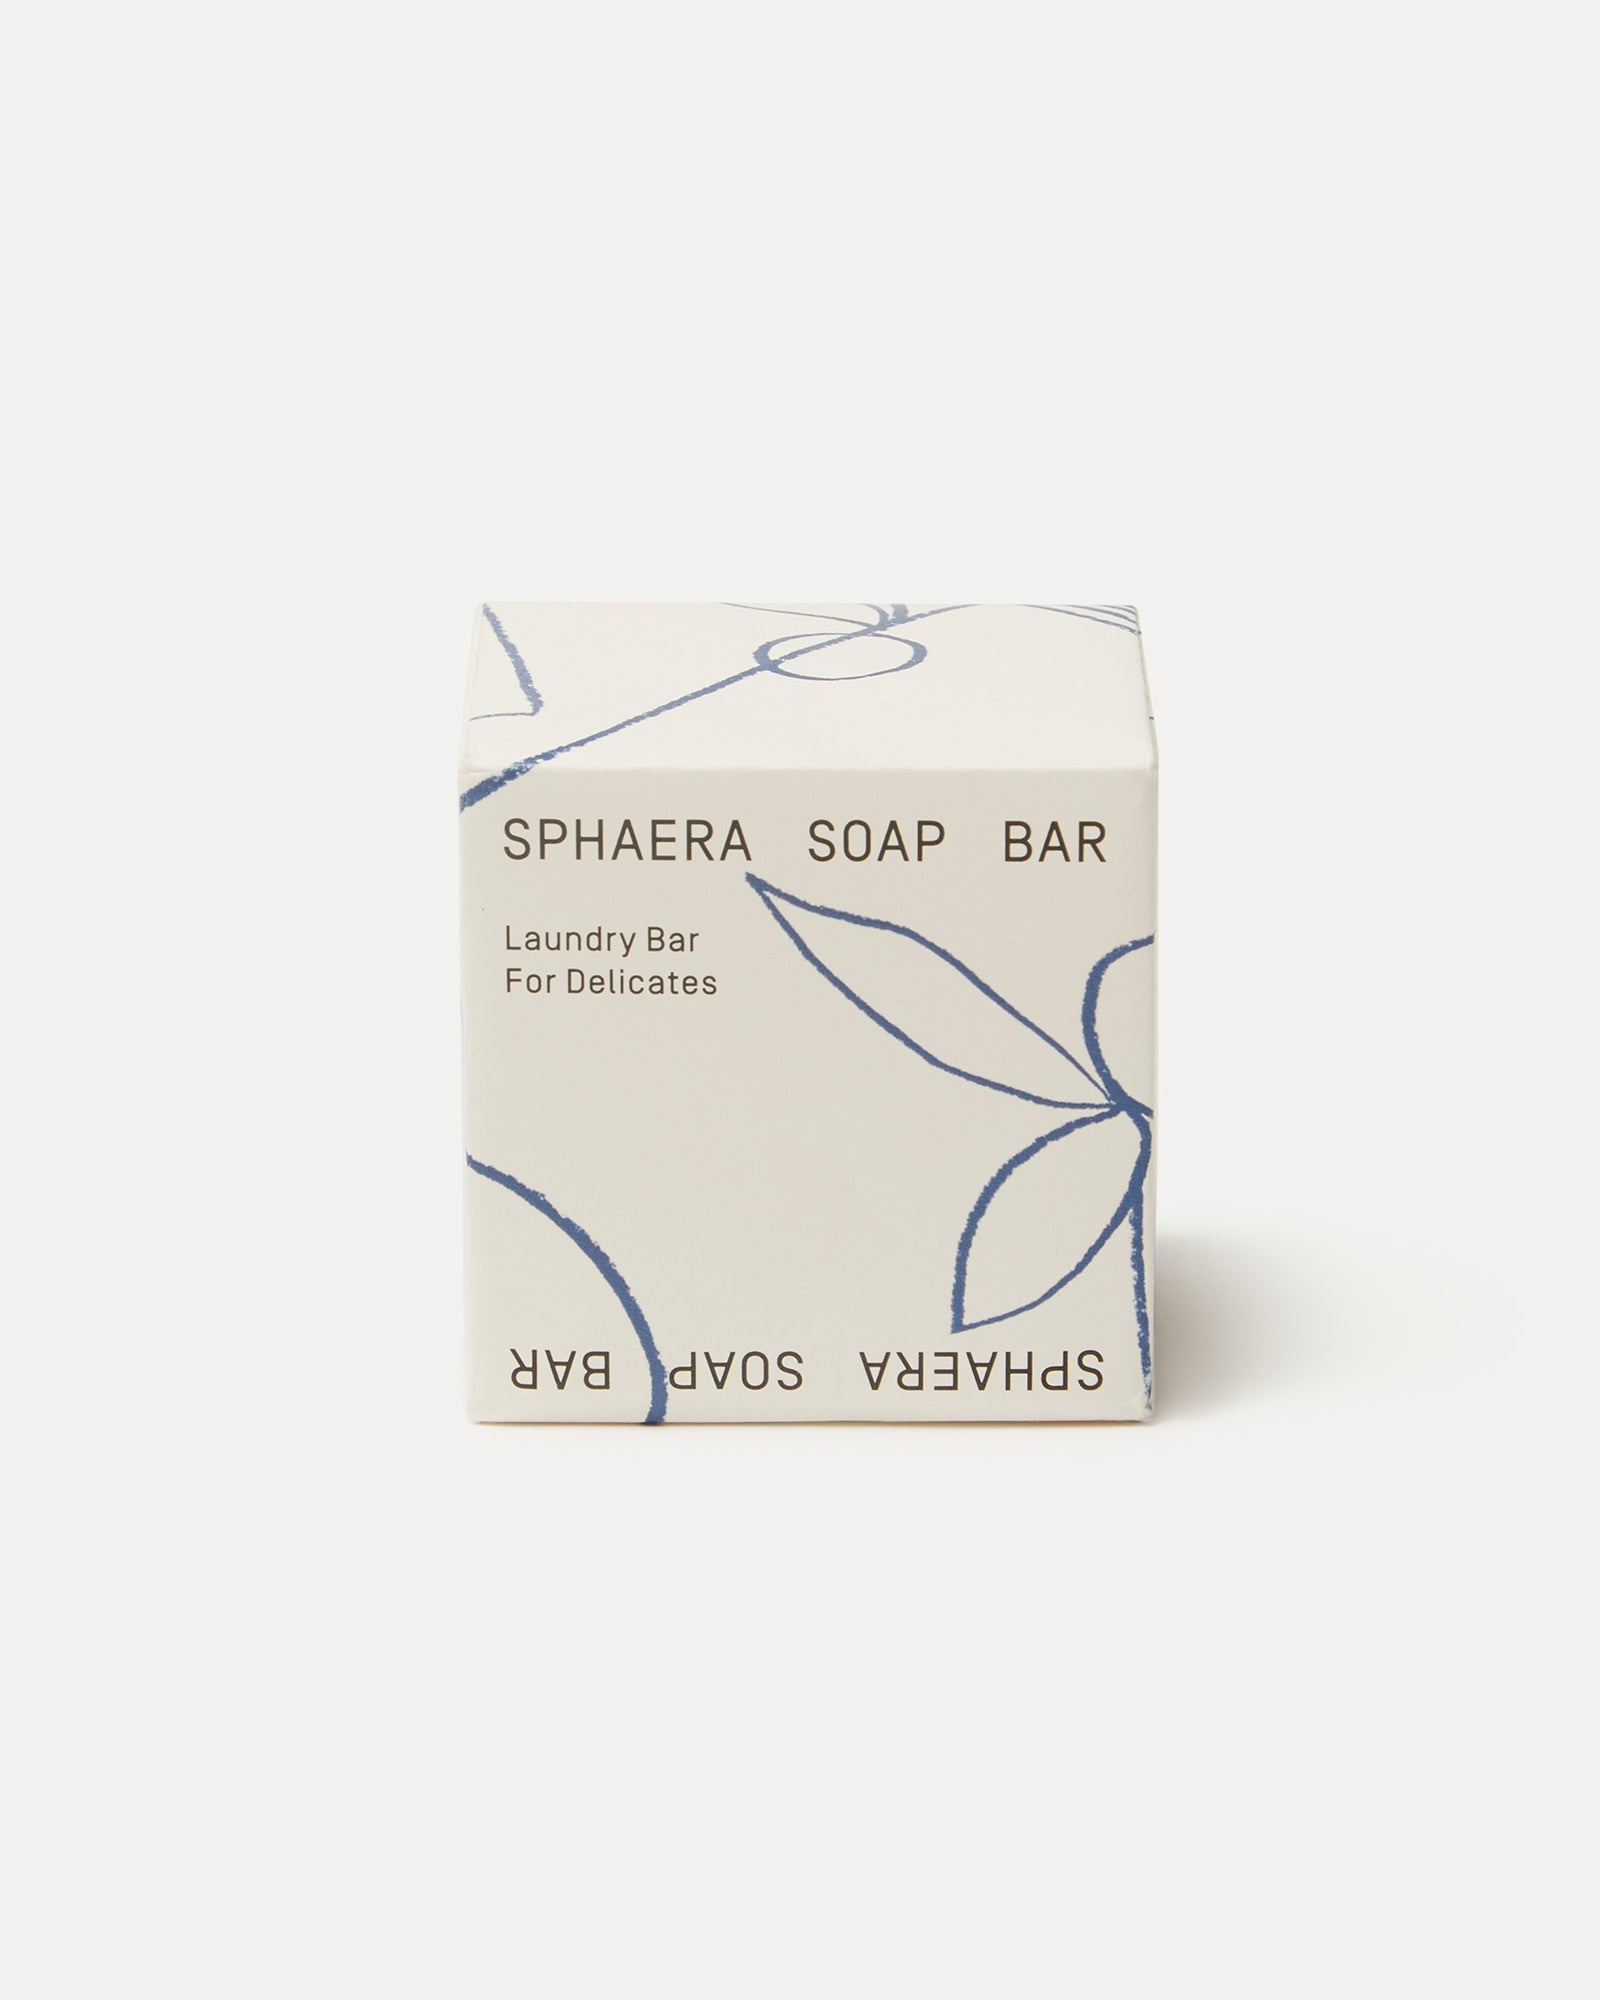 Sphaera Soap Bar Laundry Bar